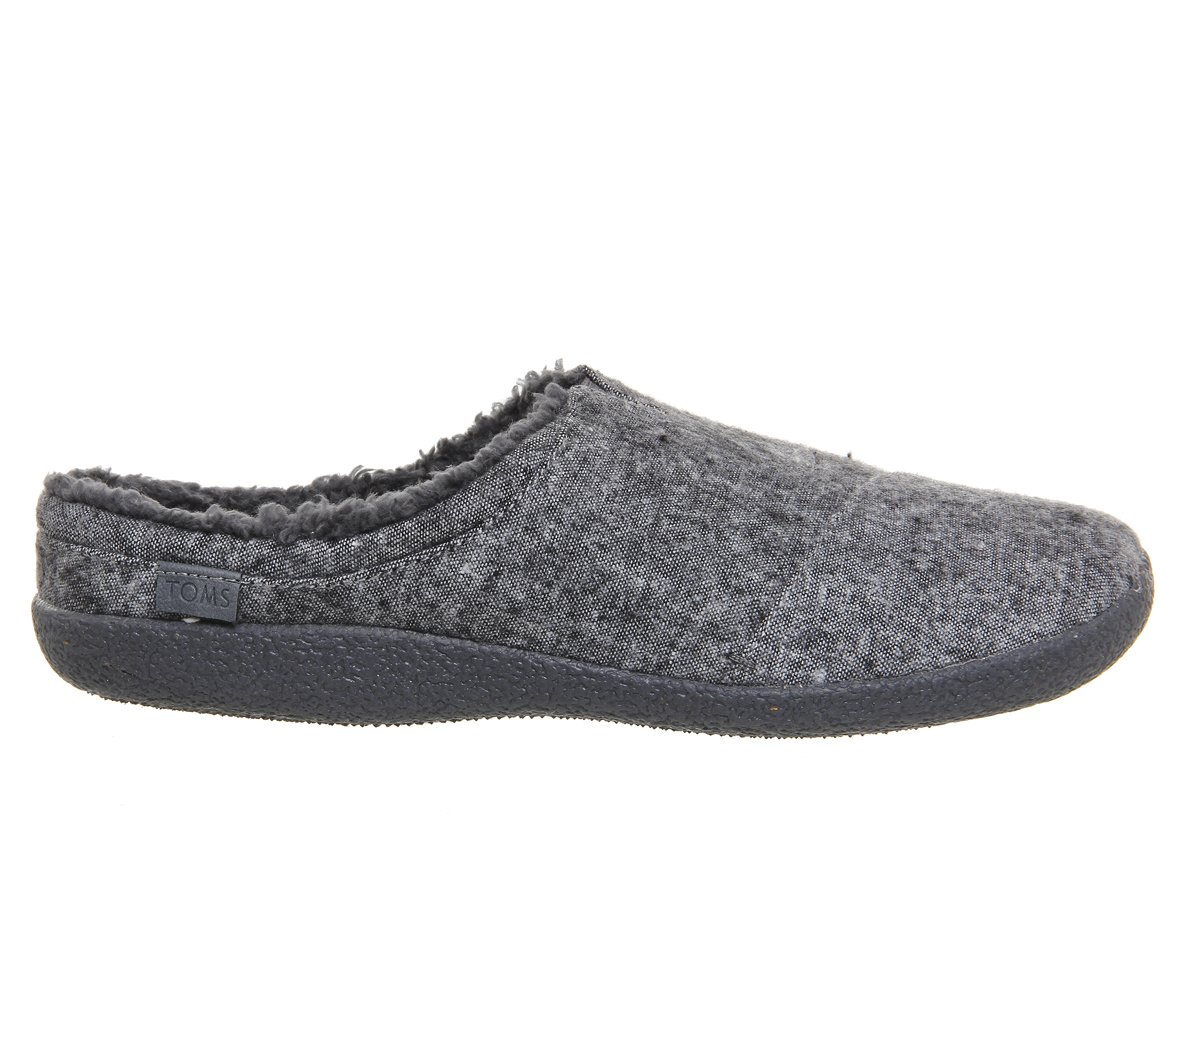 6375d8f79 Galleon - TOMS Men's Slippers Berkeley Grey Slub Black Teal Tribal Wool 7  D(M) US